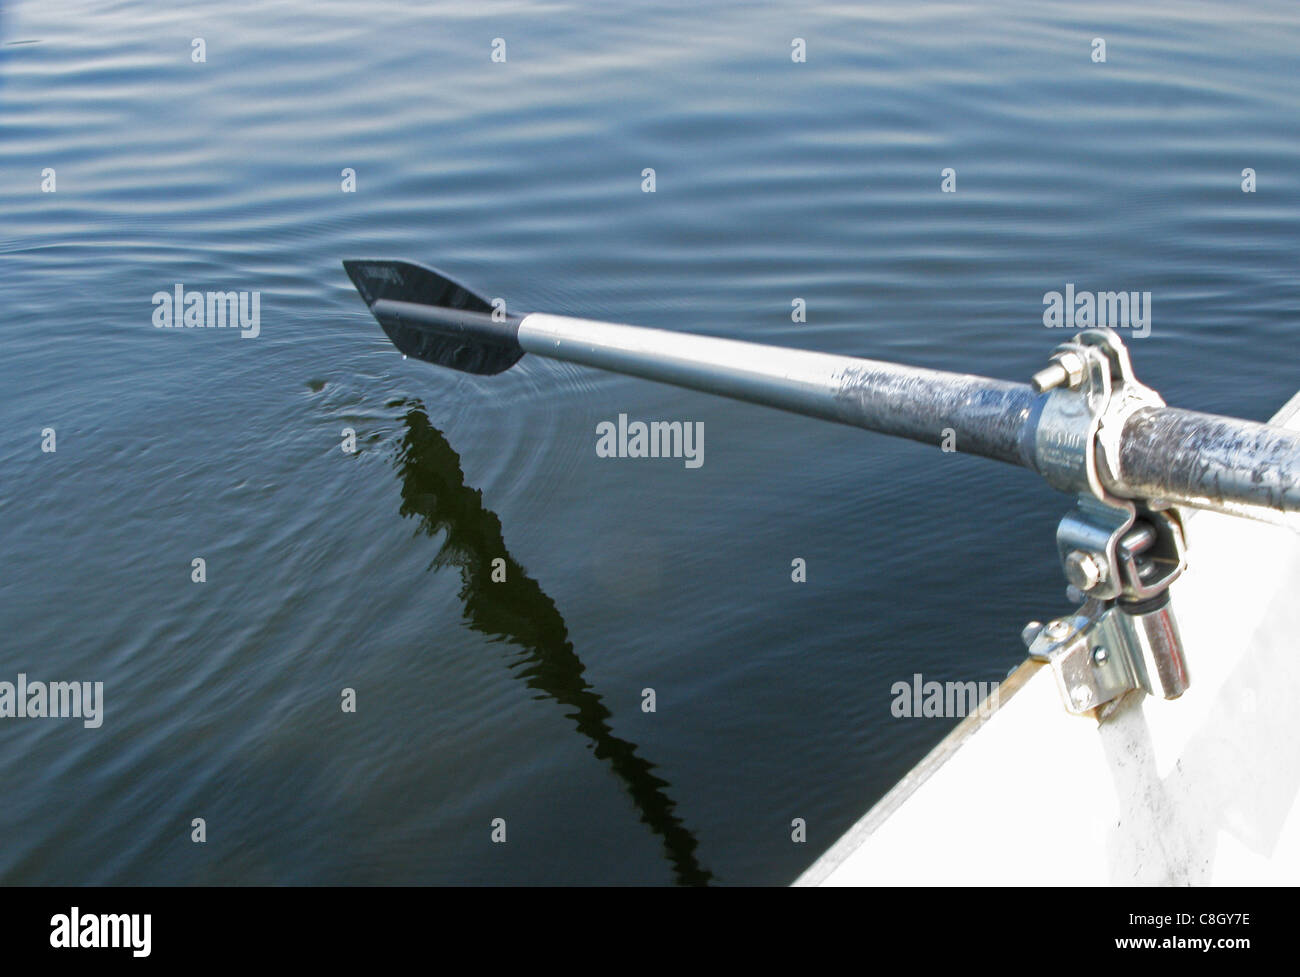 A oar of a row boat slightly above the water's surface - Stock Image